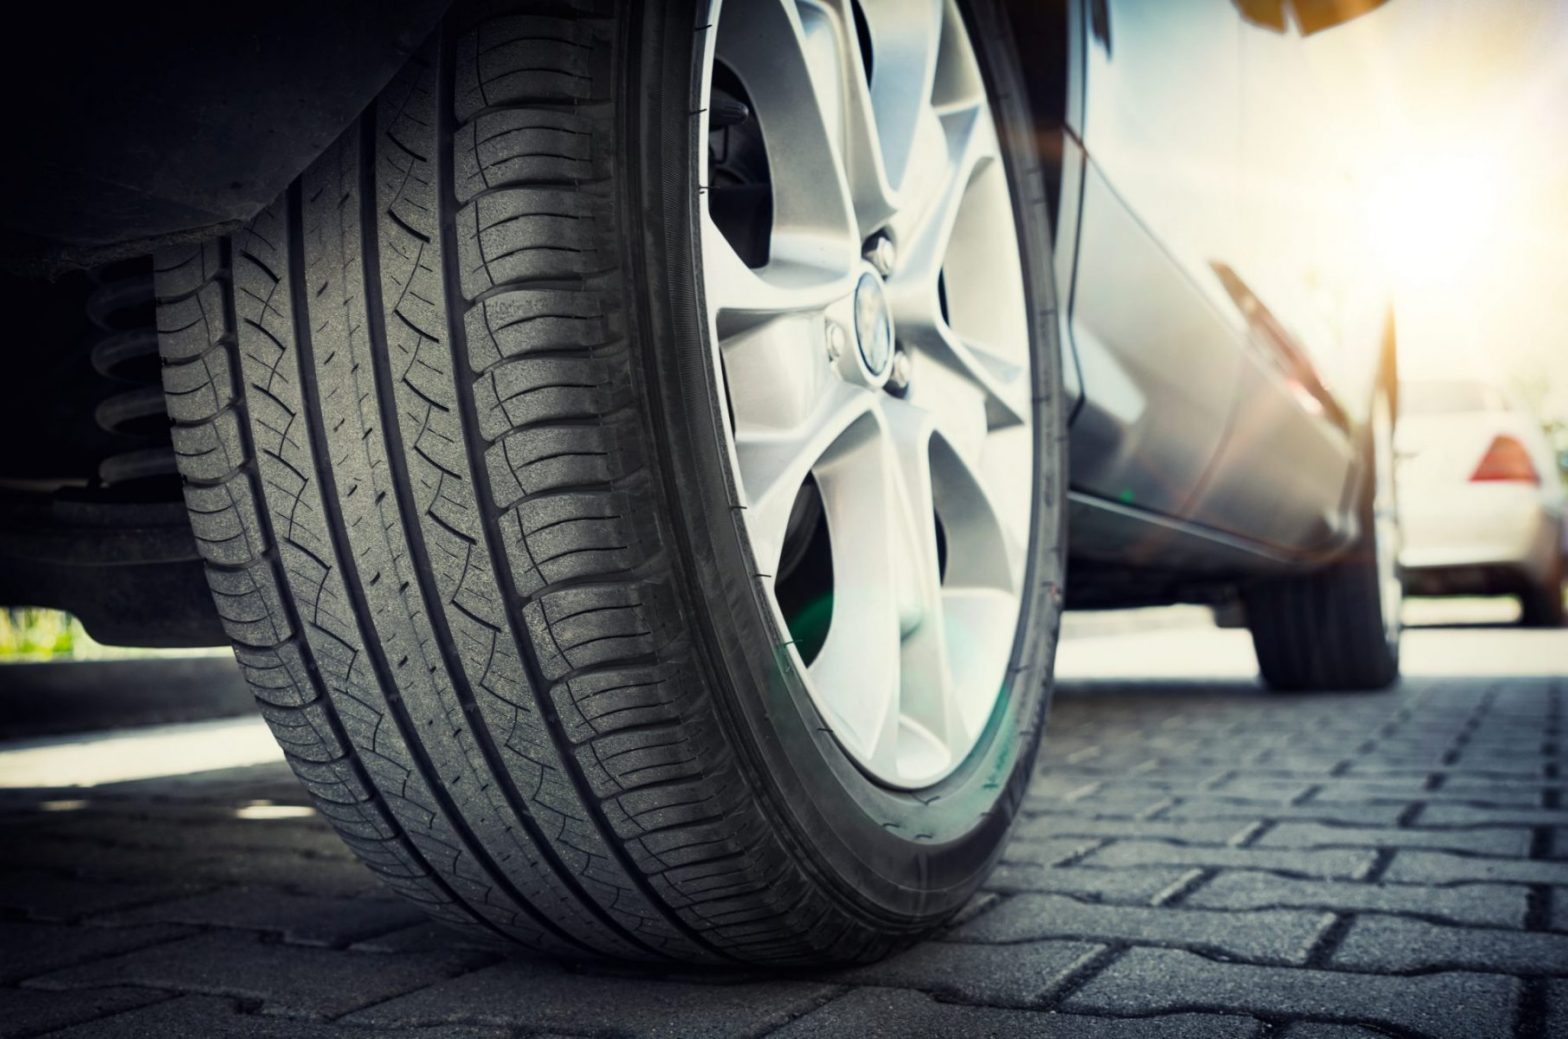 A car tire close up representing how our Hampton car accident attorney can help if you have been injured in a crash